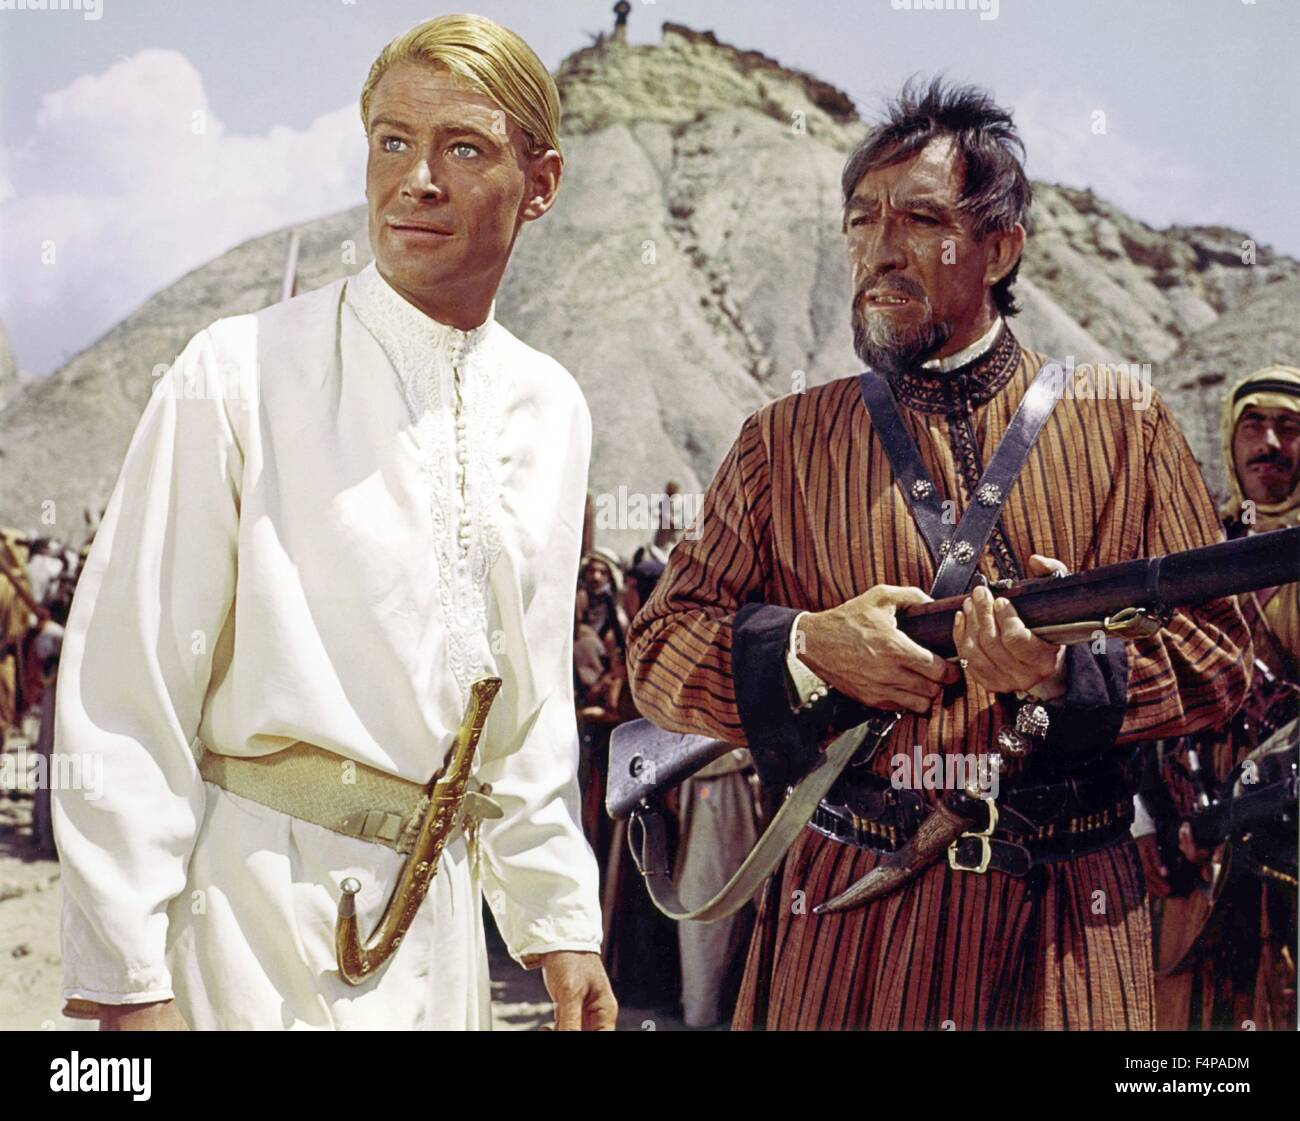 Lawrence Of Arabia David Lean: Peter O'Toole, Anthony Quinn / Lawrence Of Arabia 1962